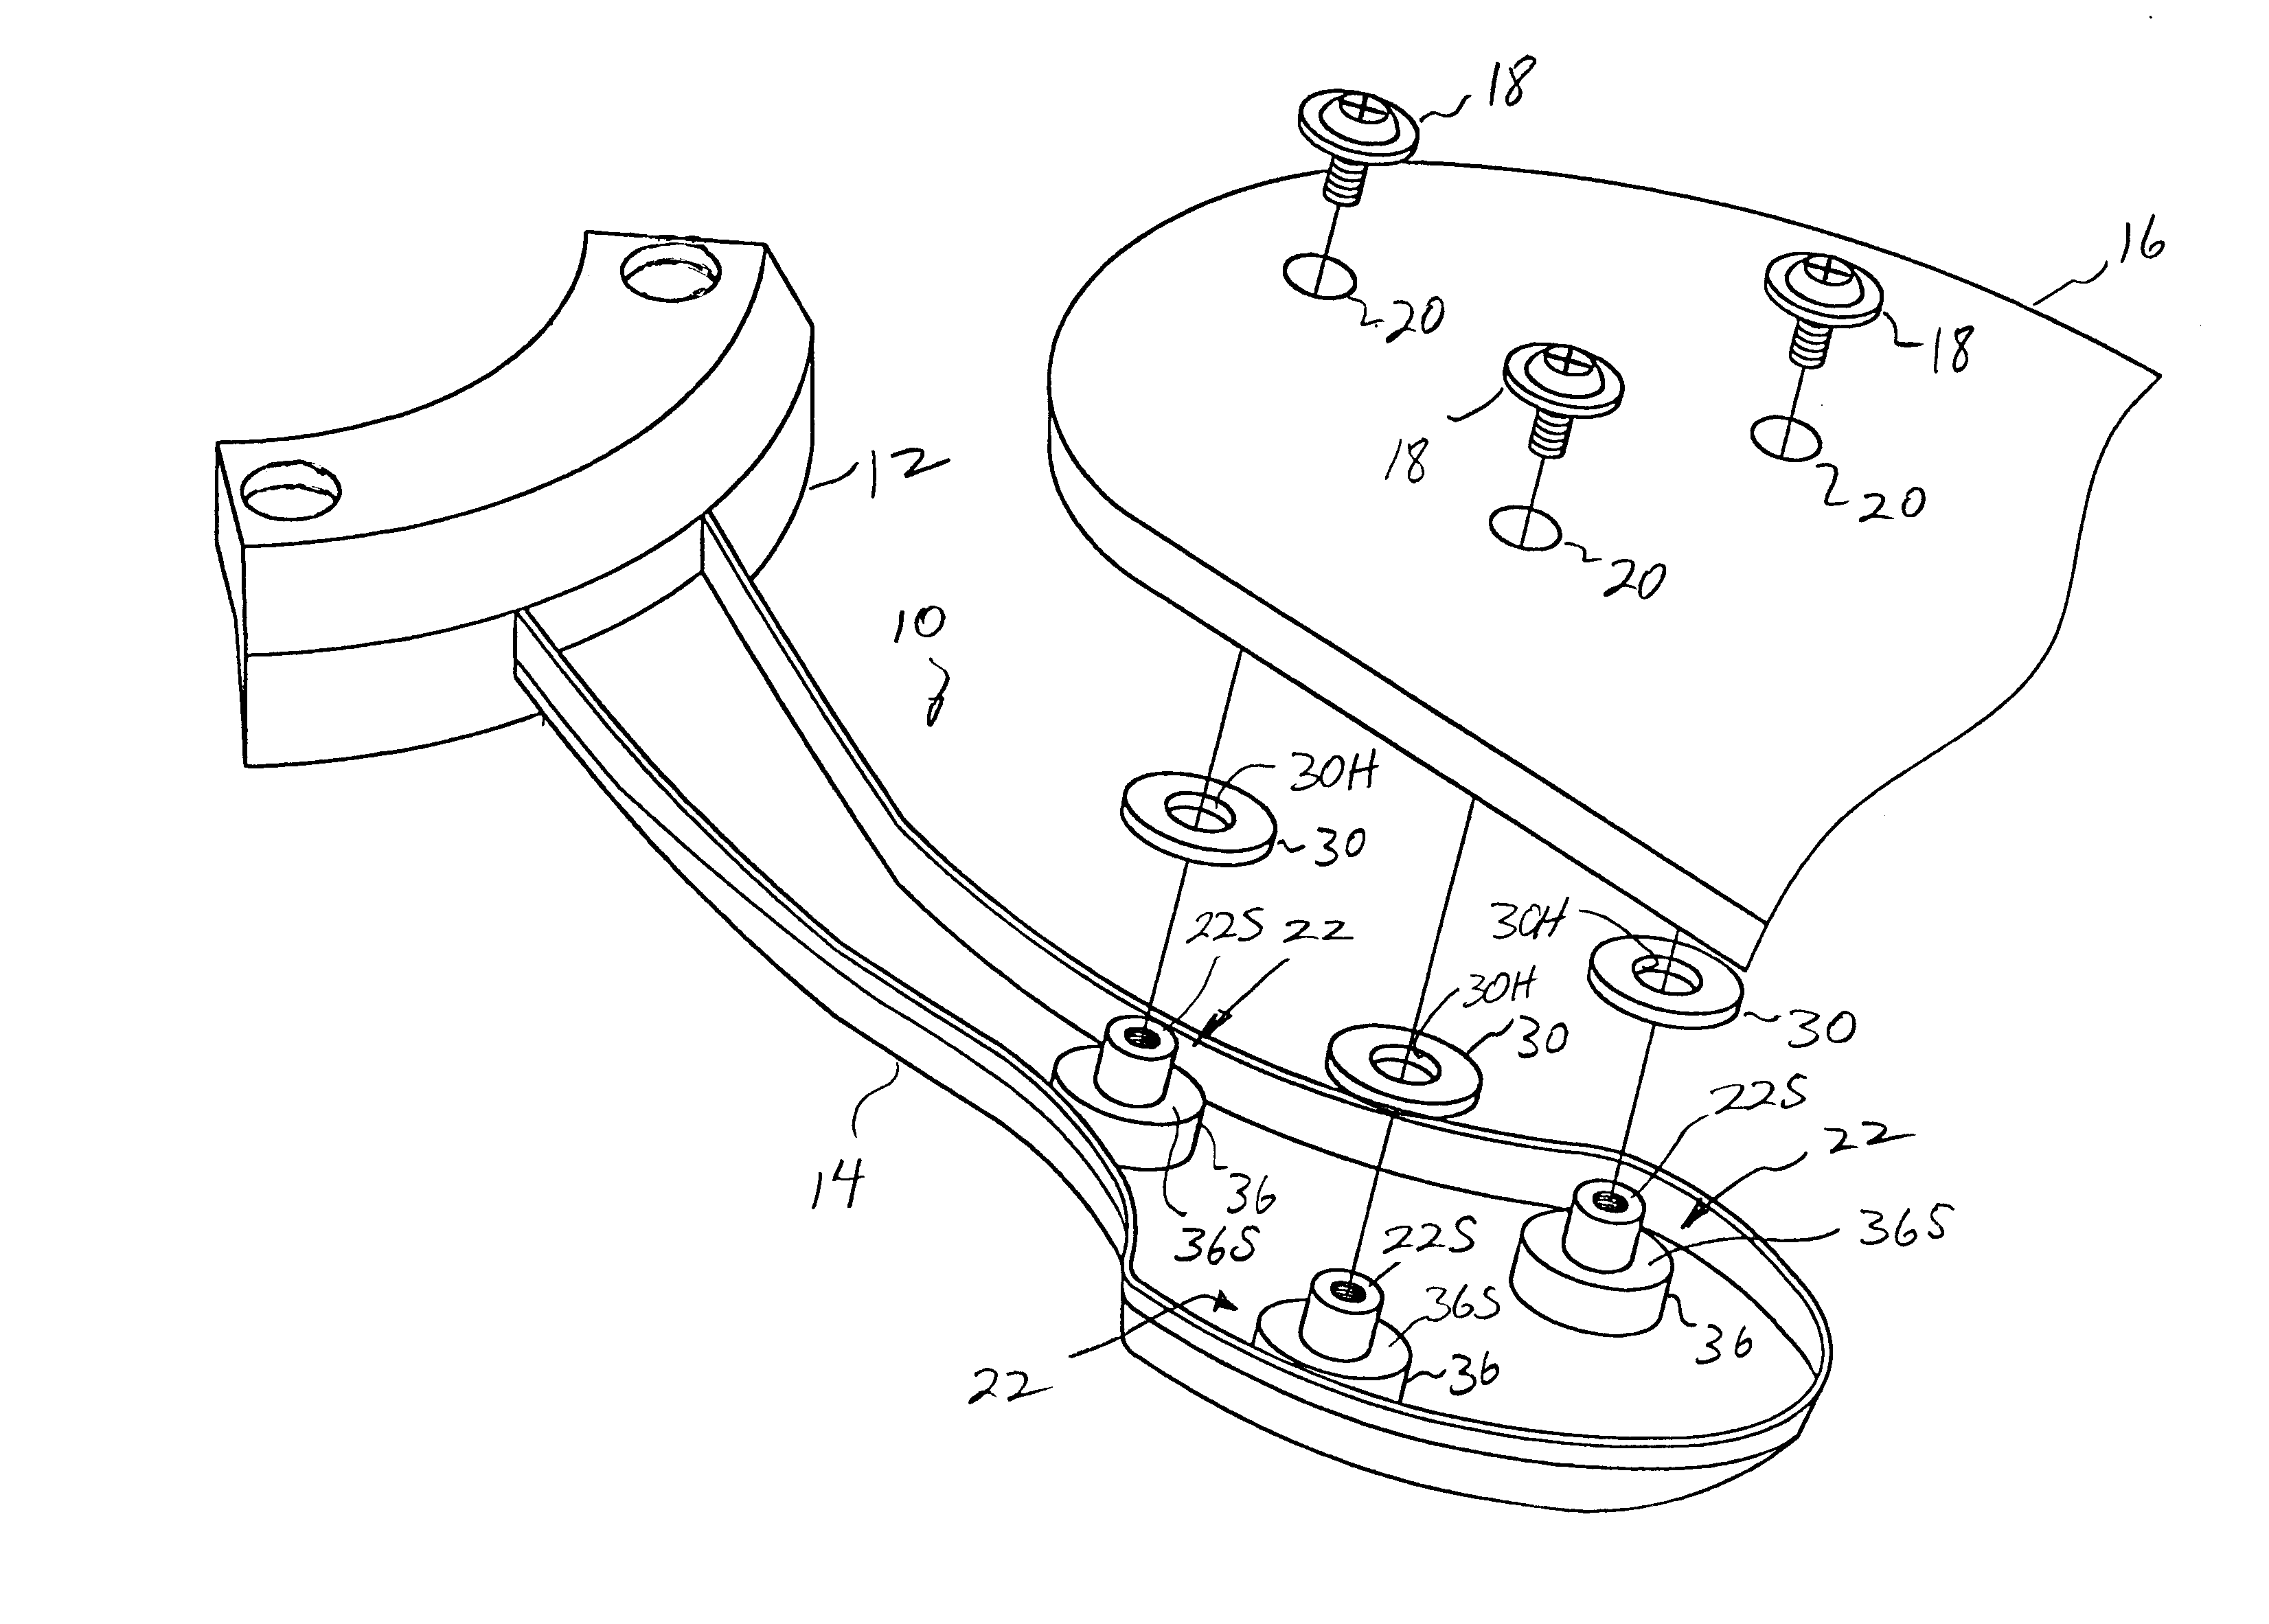 Fan Blade Drawing : Patent us ceiling fan blade isolation system